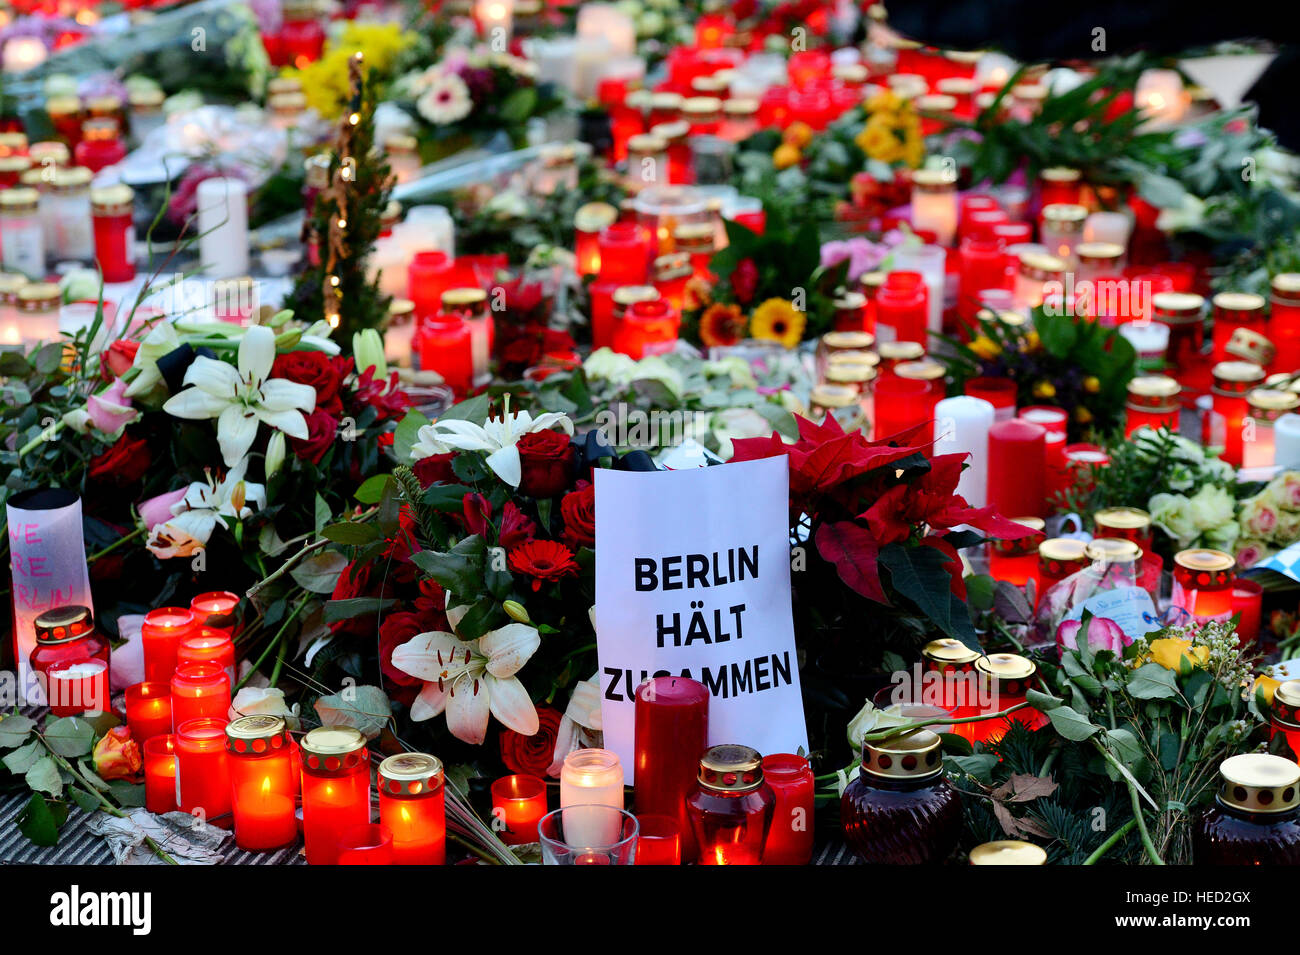 Berlin, Germany. 21st Dec, 2016. Passers-by have laid candles and flowers at the site of the attack near the Kaiser - Stock Image